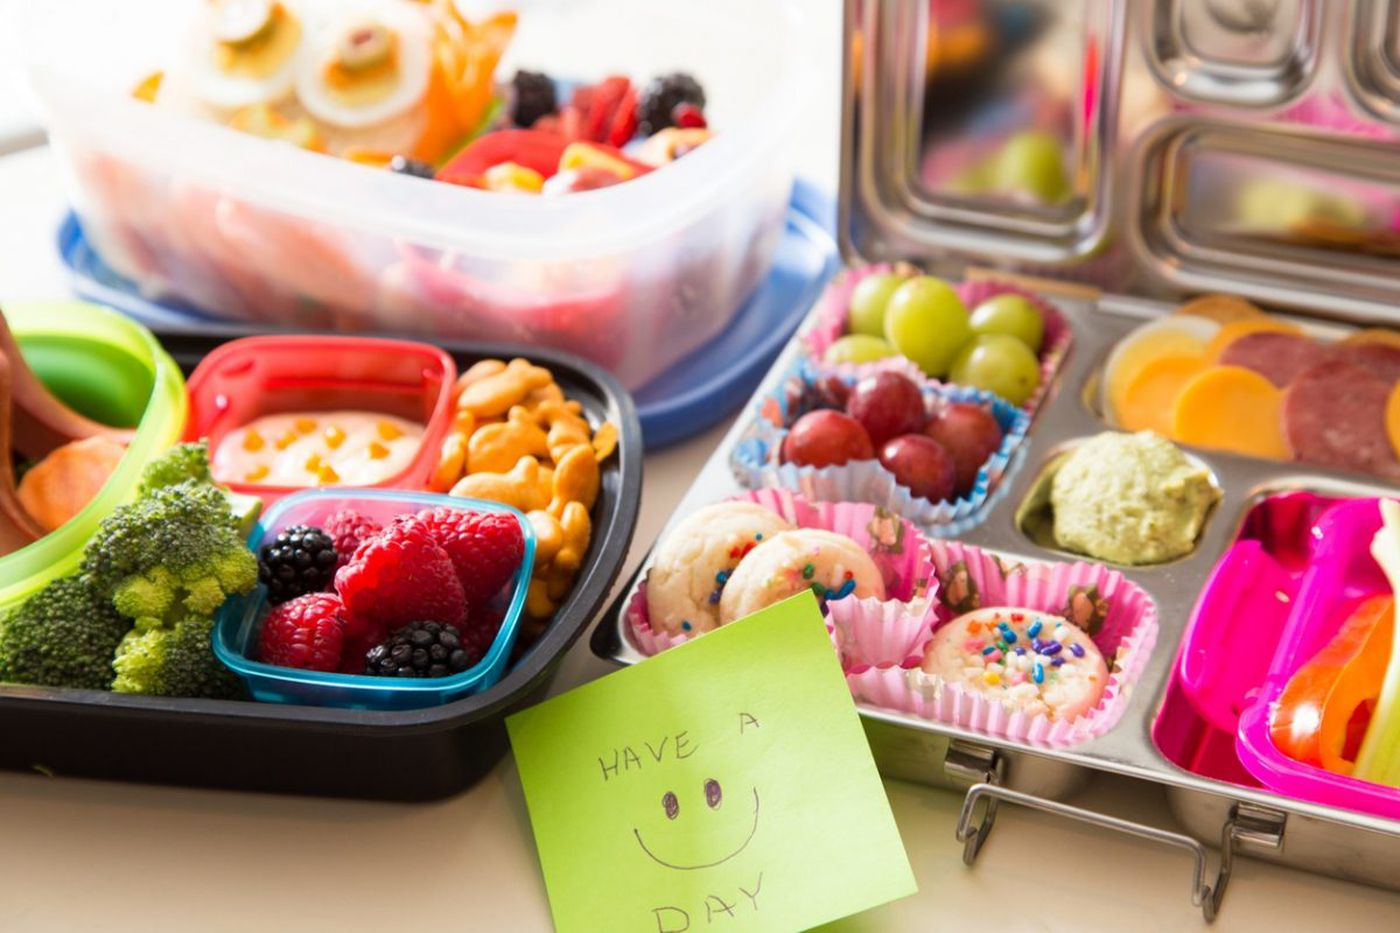 Ideas to get out of the midyear lunchbox slump